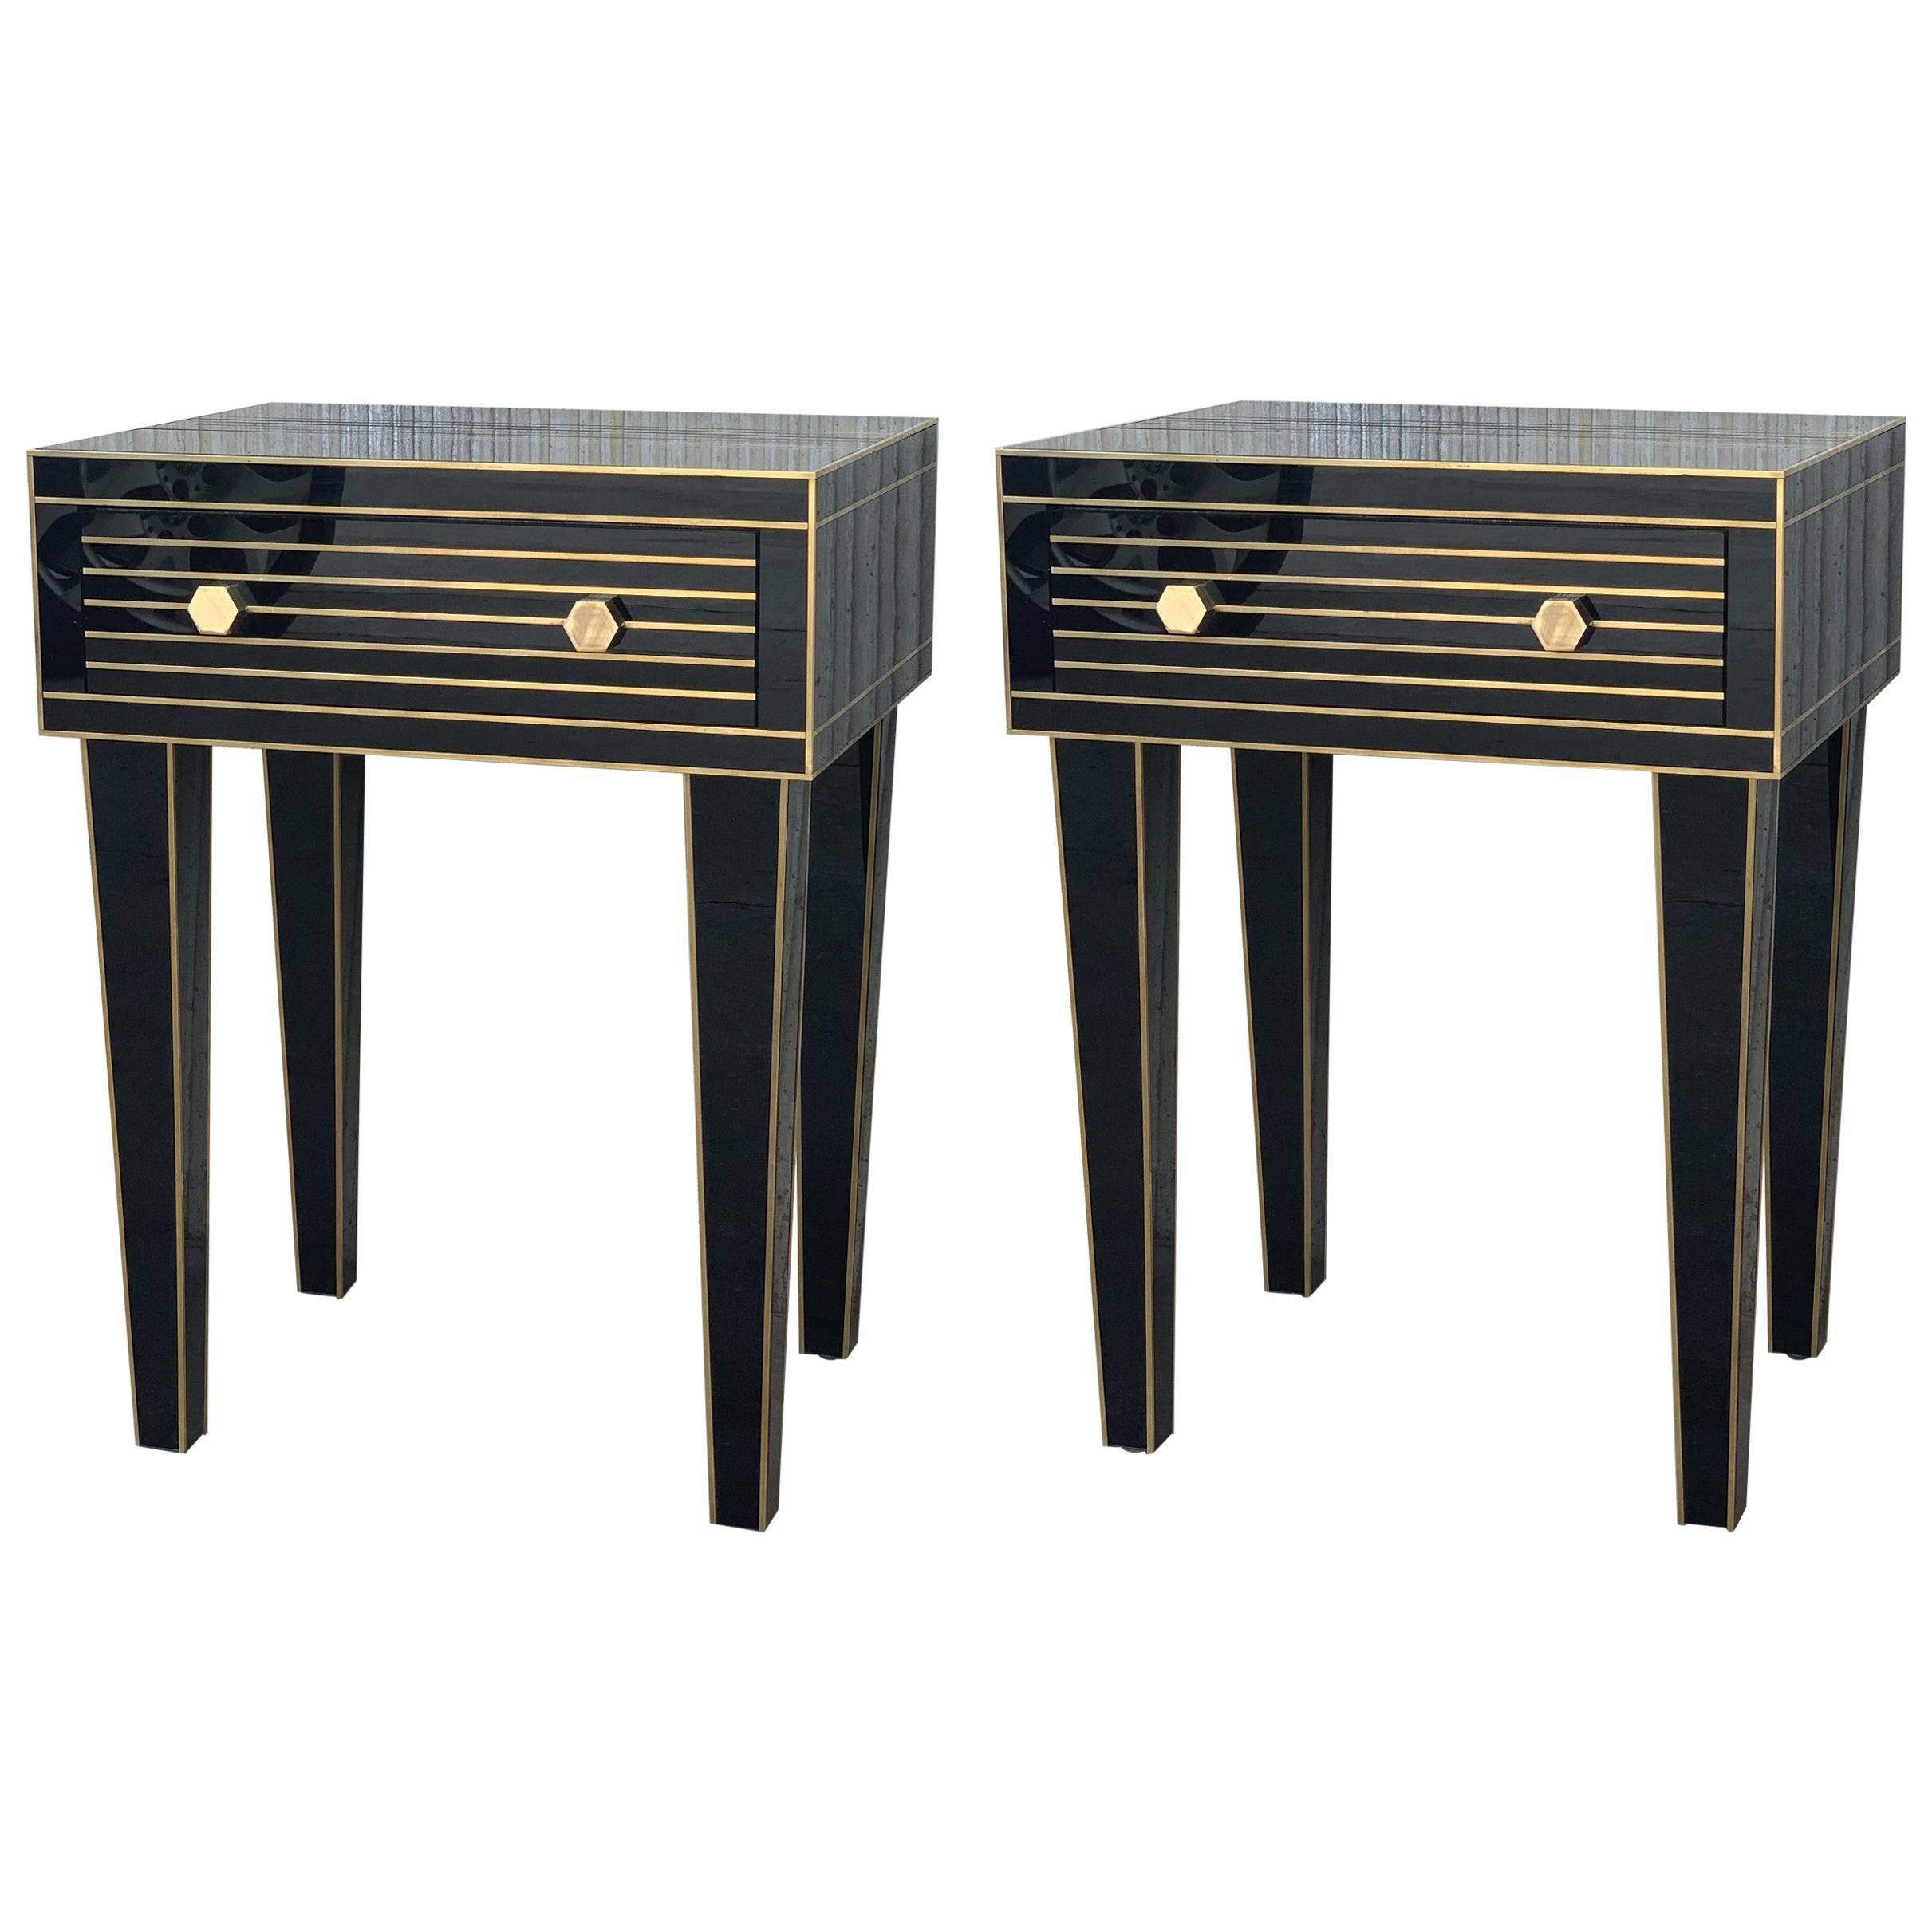 New Mirrored Nightstand in Black Mirror and Chrome with One Drawer